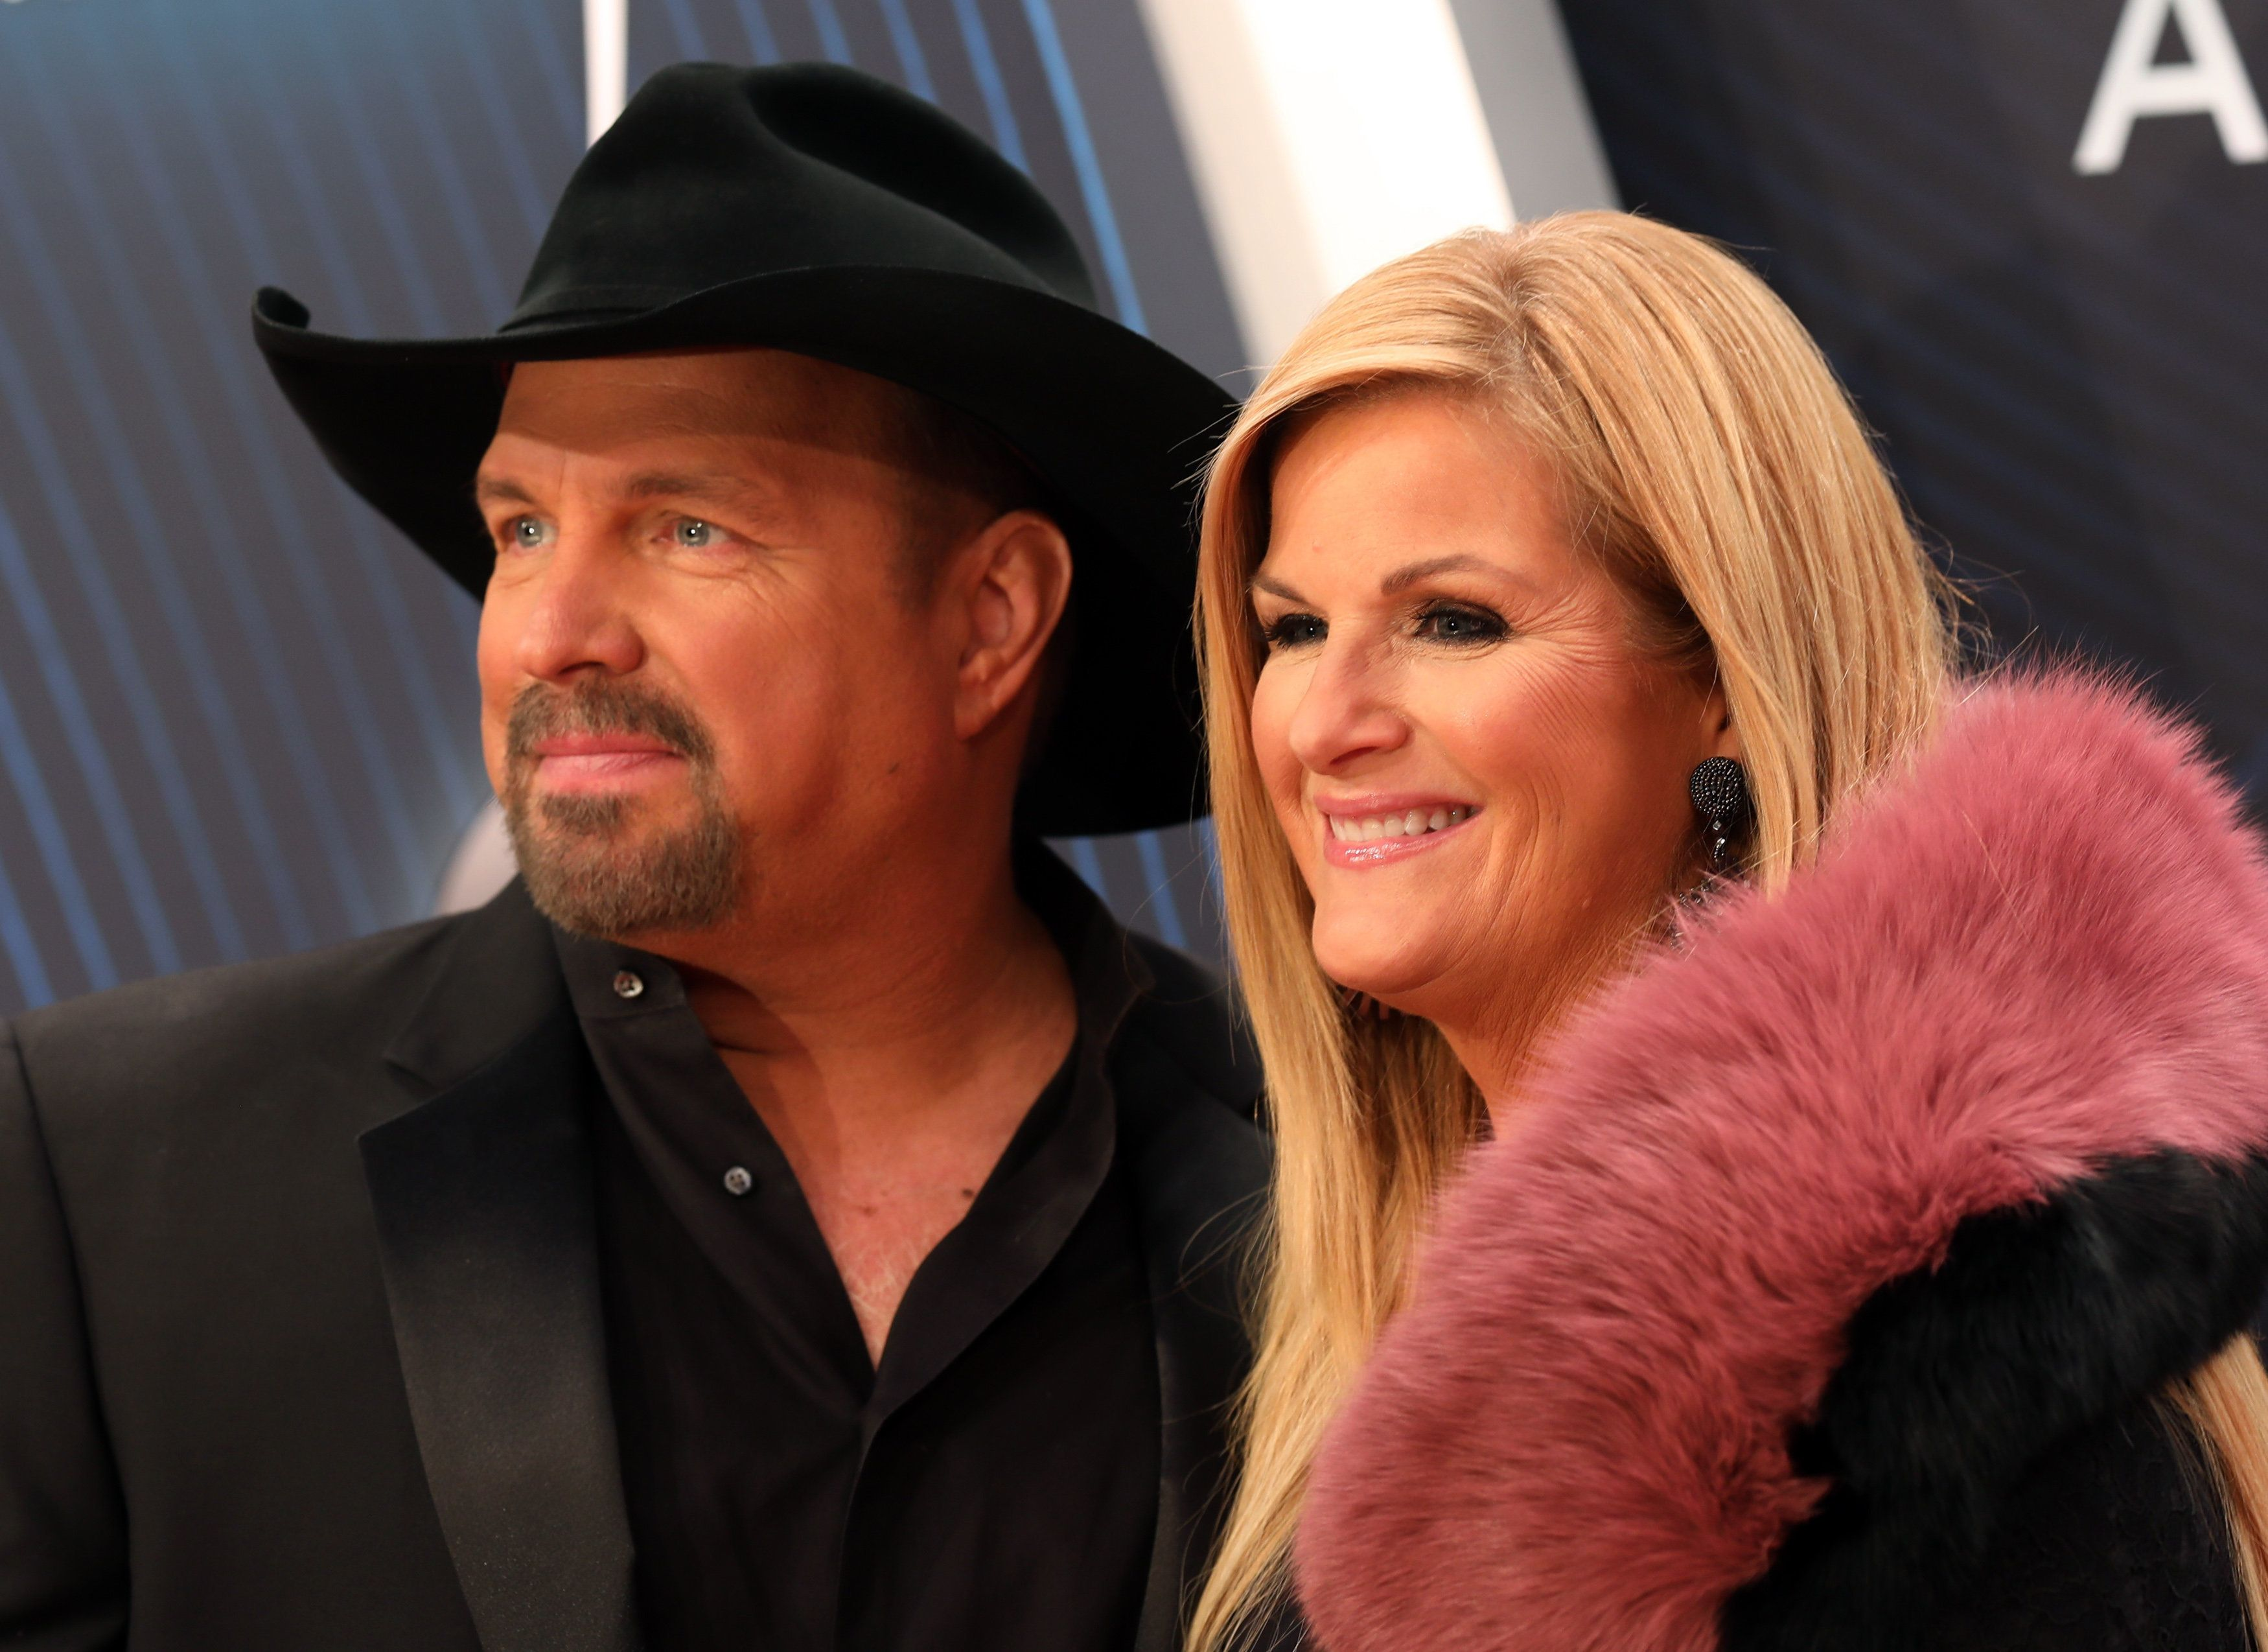 Garth Brooks Opens 2018 CMAs With Tribute To Thousand Oaks Taking pictures Victims